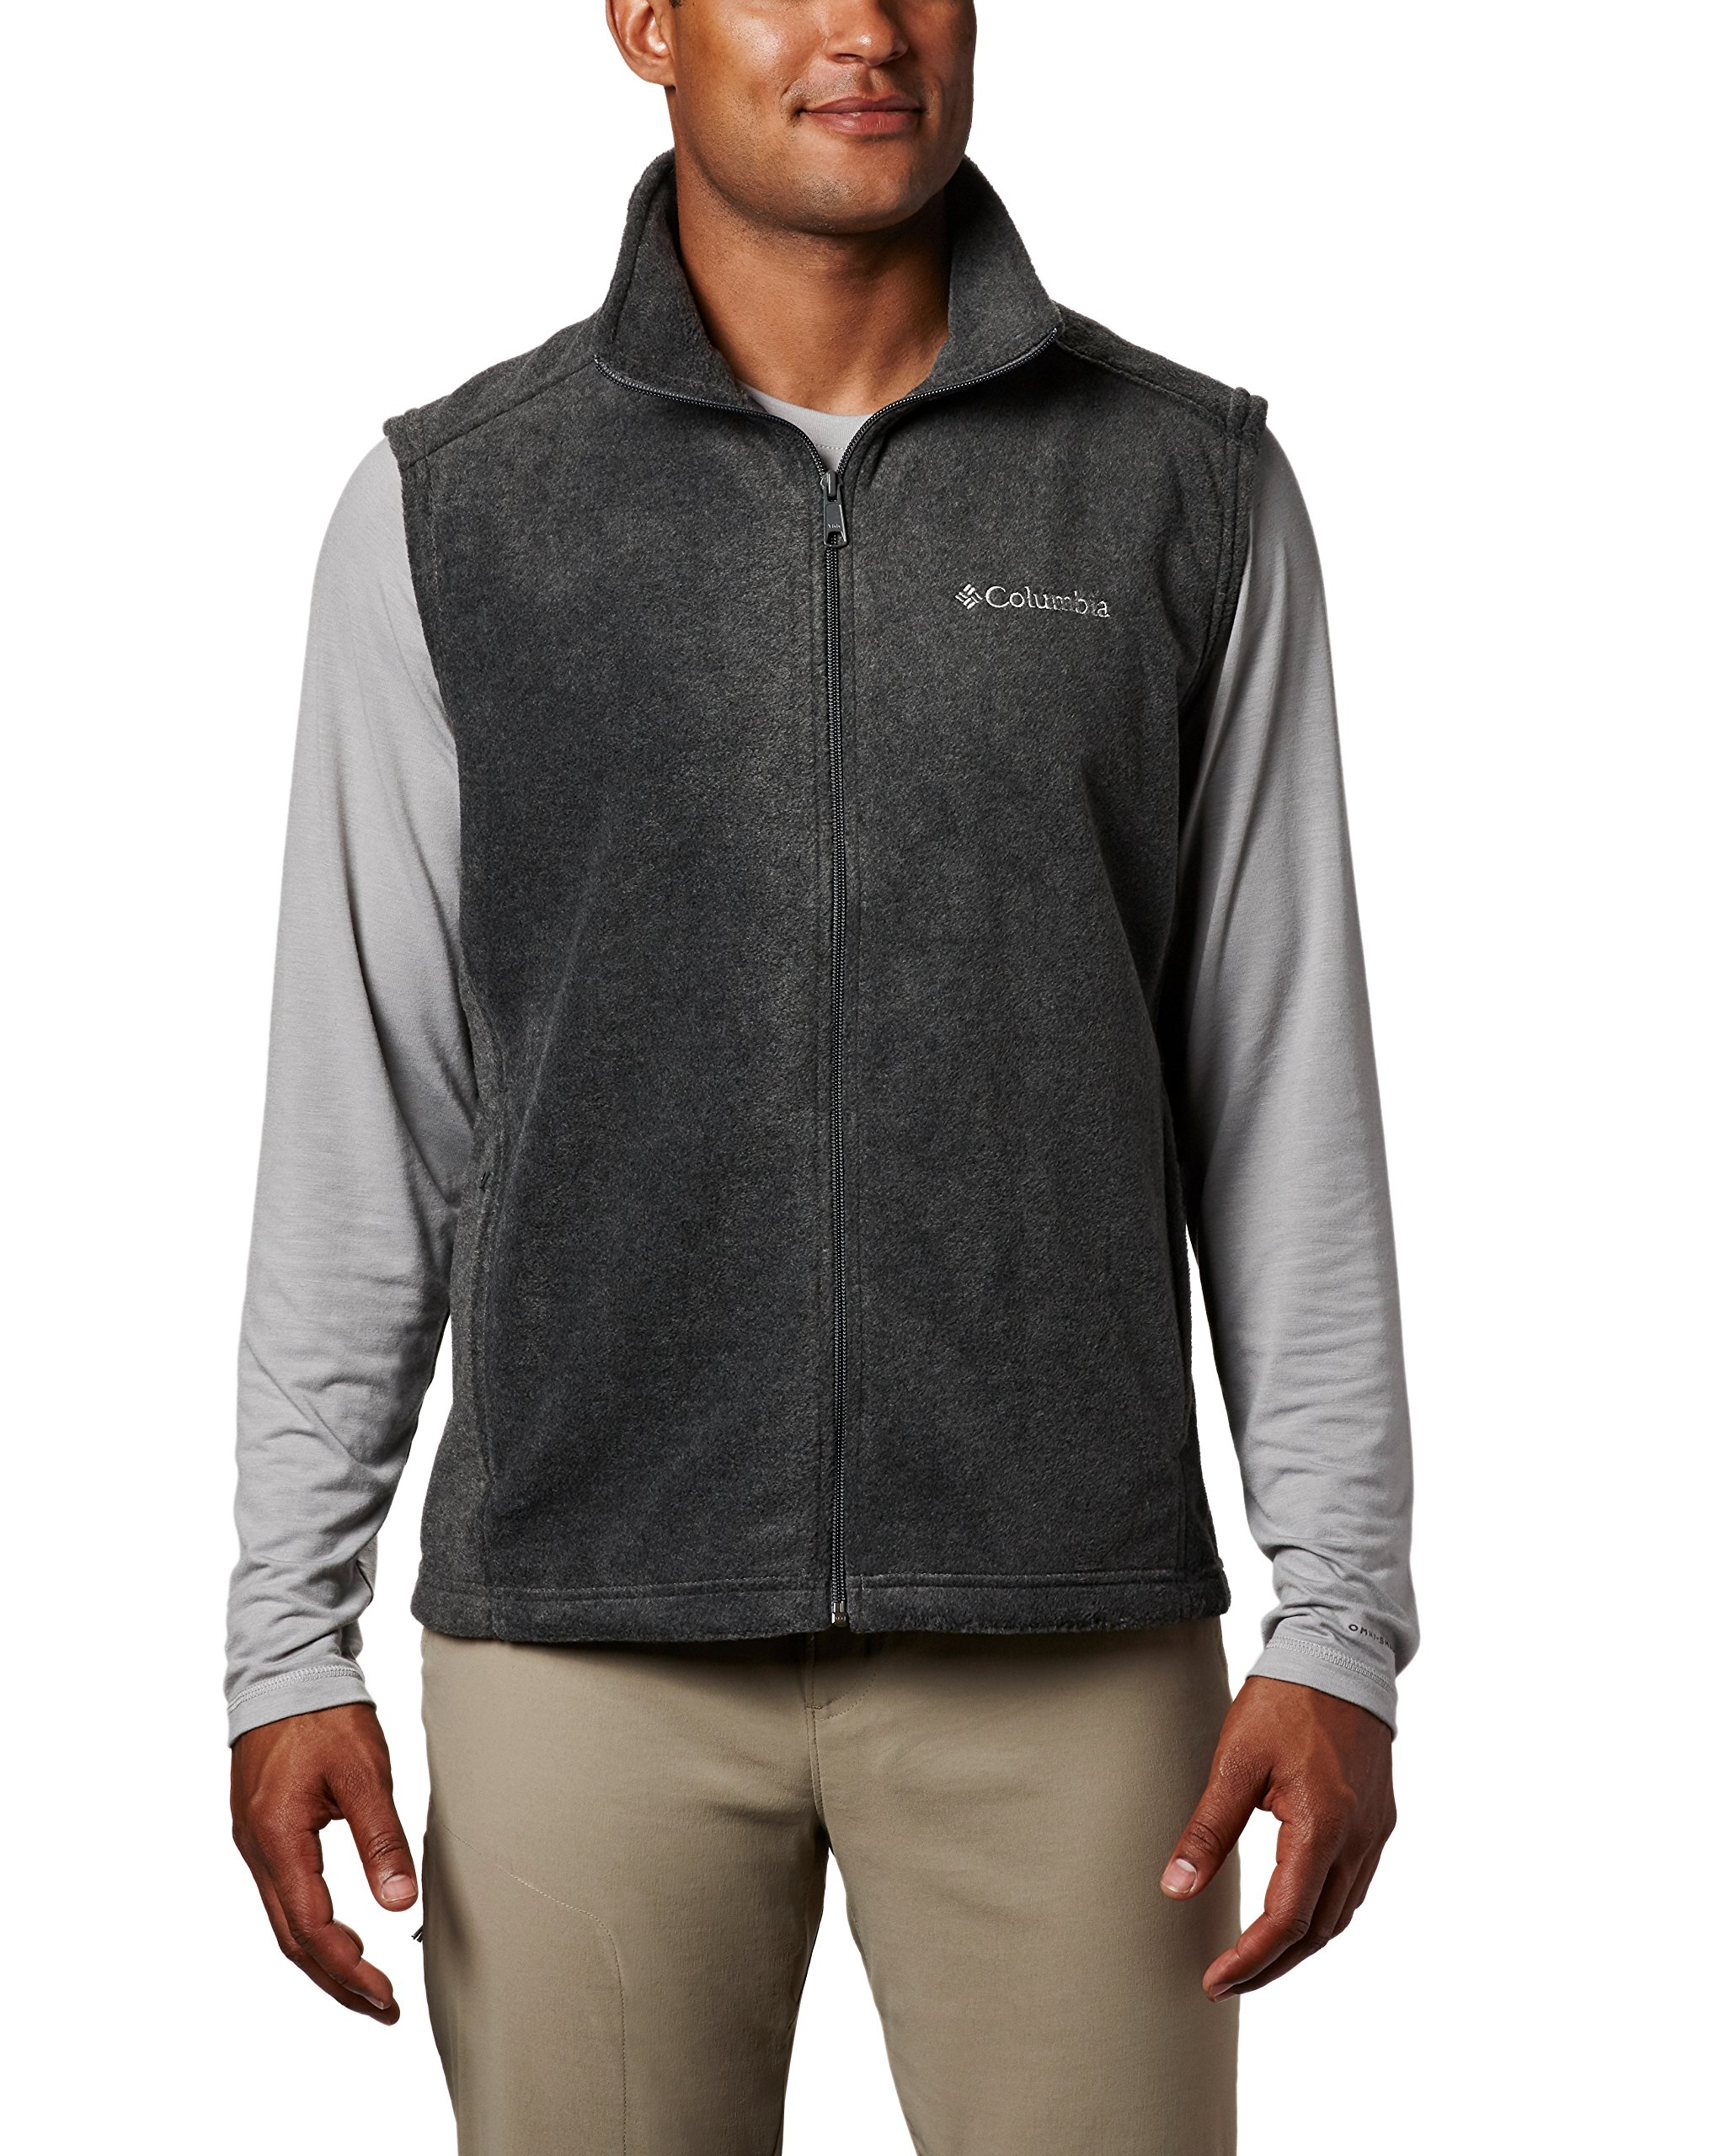 Columbia Big and Tall Men's Steens Mountain Full Zip Soft Fleece Vest, Charcoal Heather, XLT